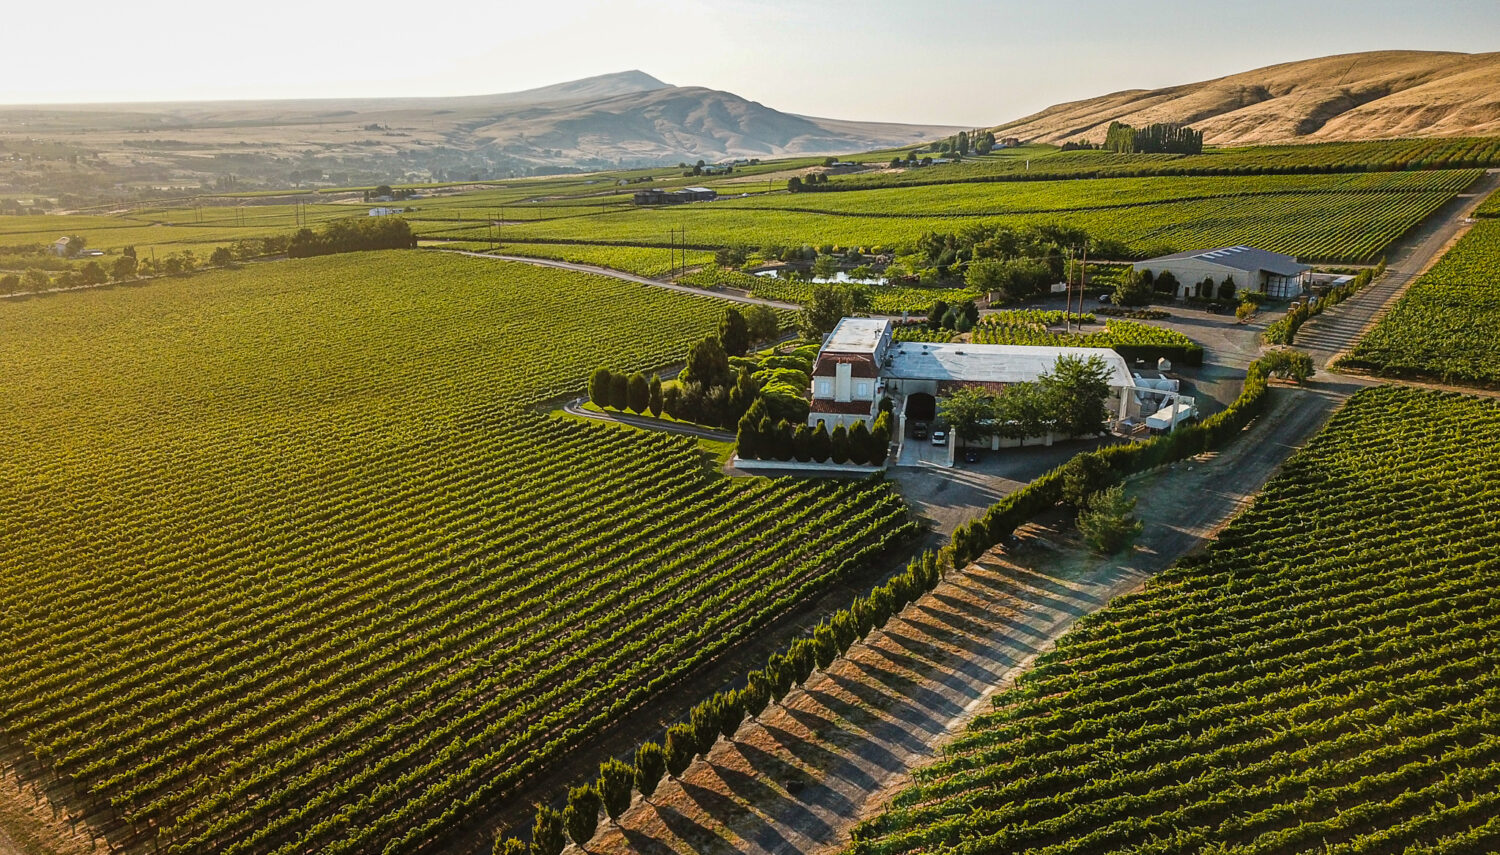 Evening light slants through grape vines in a large vineyard, with a set of buildings to the right and a pointed hill on the horizon.